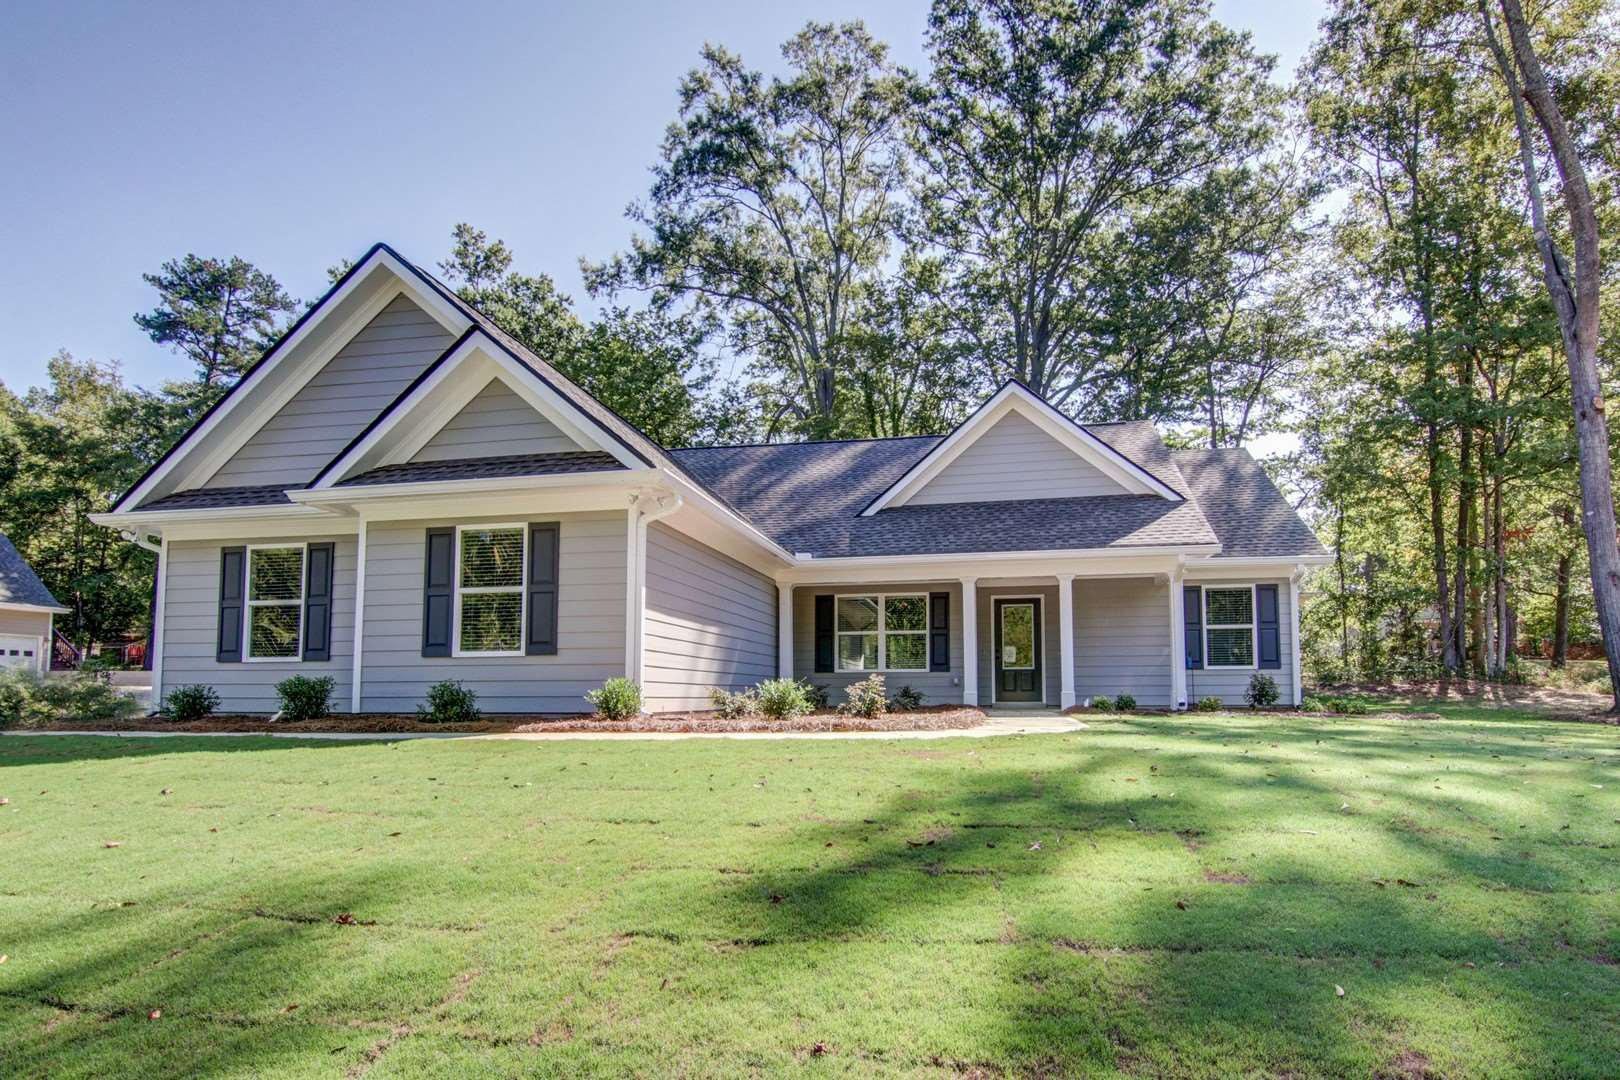 202 W SECOND STREET, Lake Oconee in Greene County, GA 30642 Home for Sale